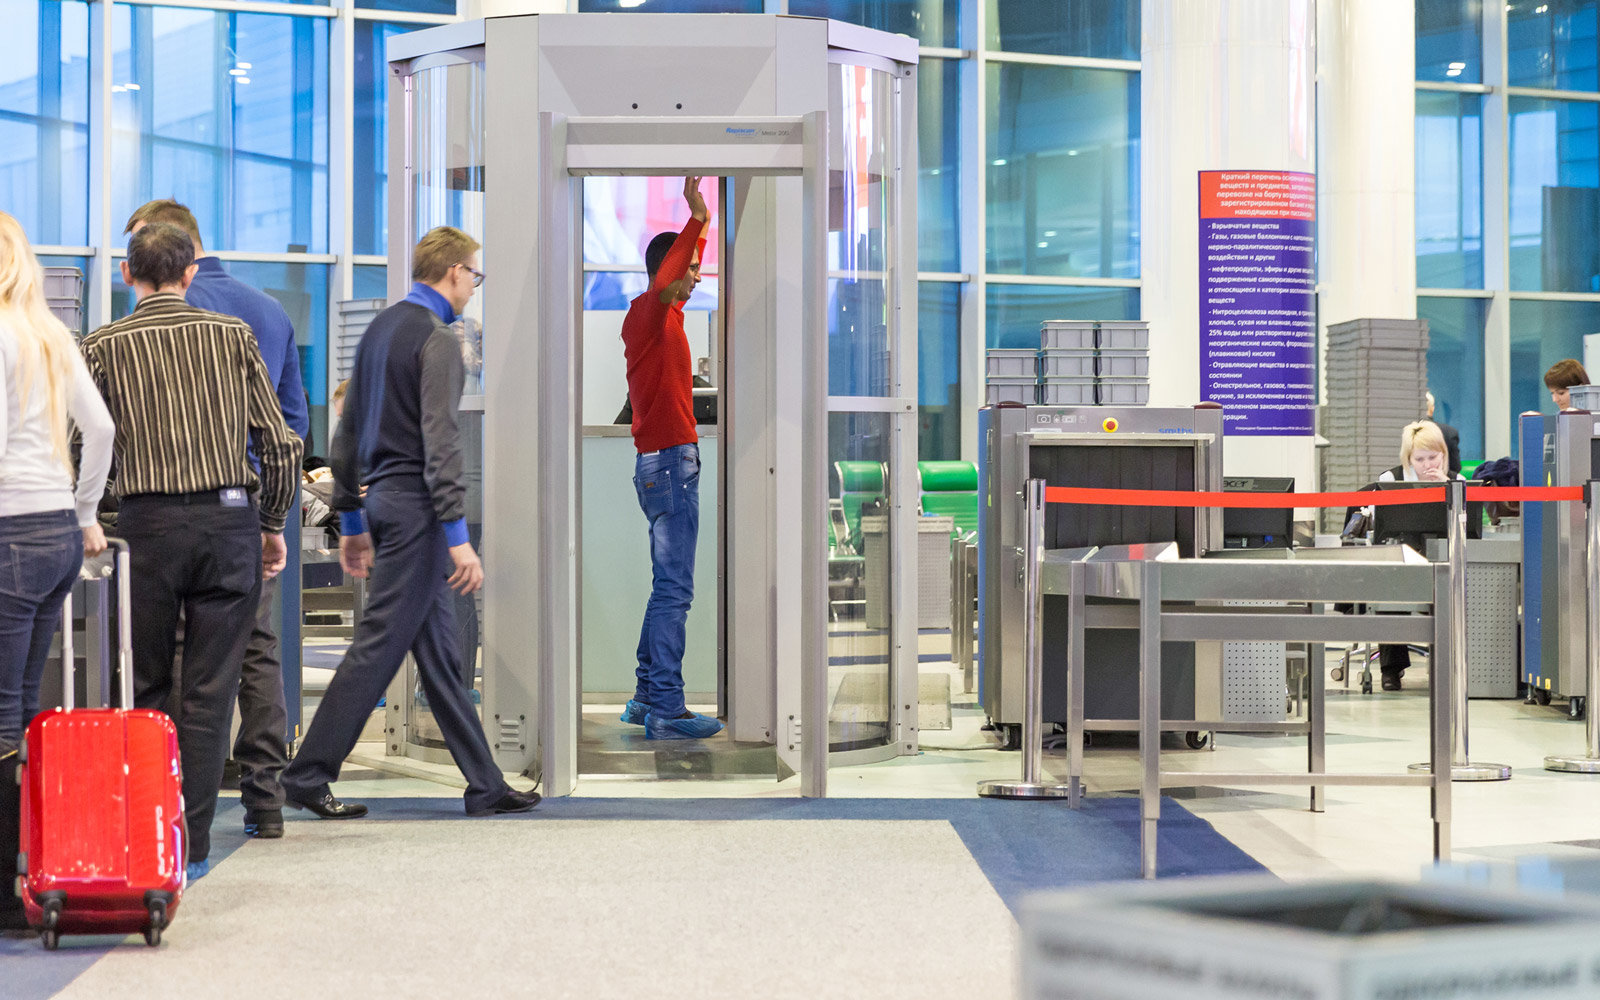 Moscow, Russia - november 23, 2013: people in the hall of the airport Domodedovo November 23, 2014 in Moscow. Domodedovo airport - the largest and modern airport of Russia